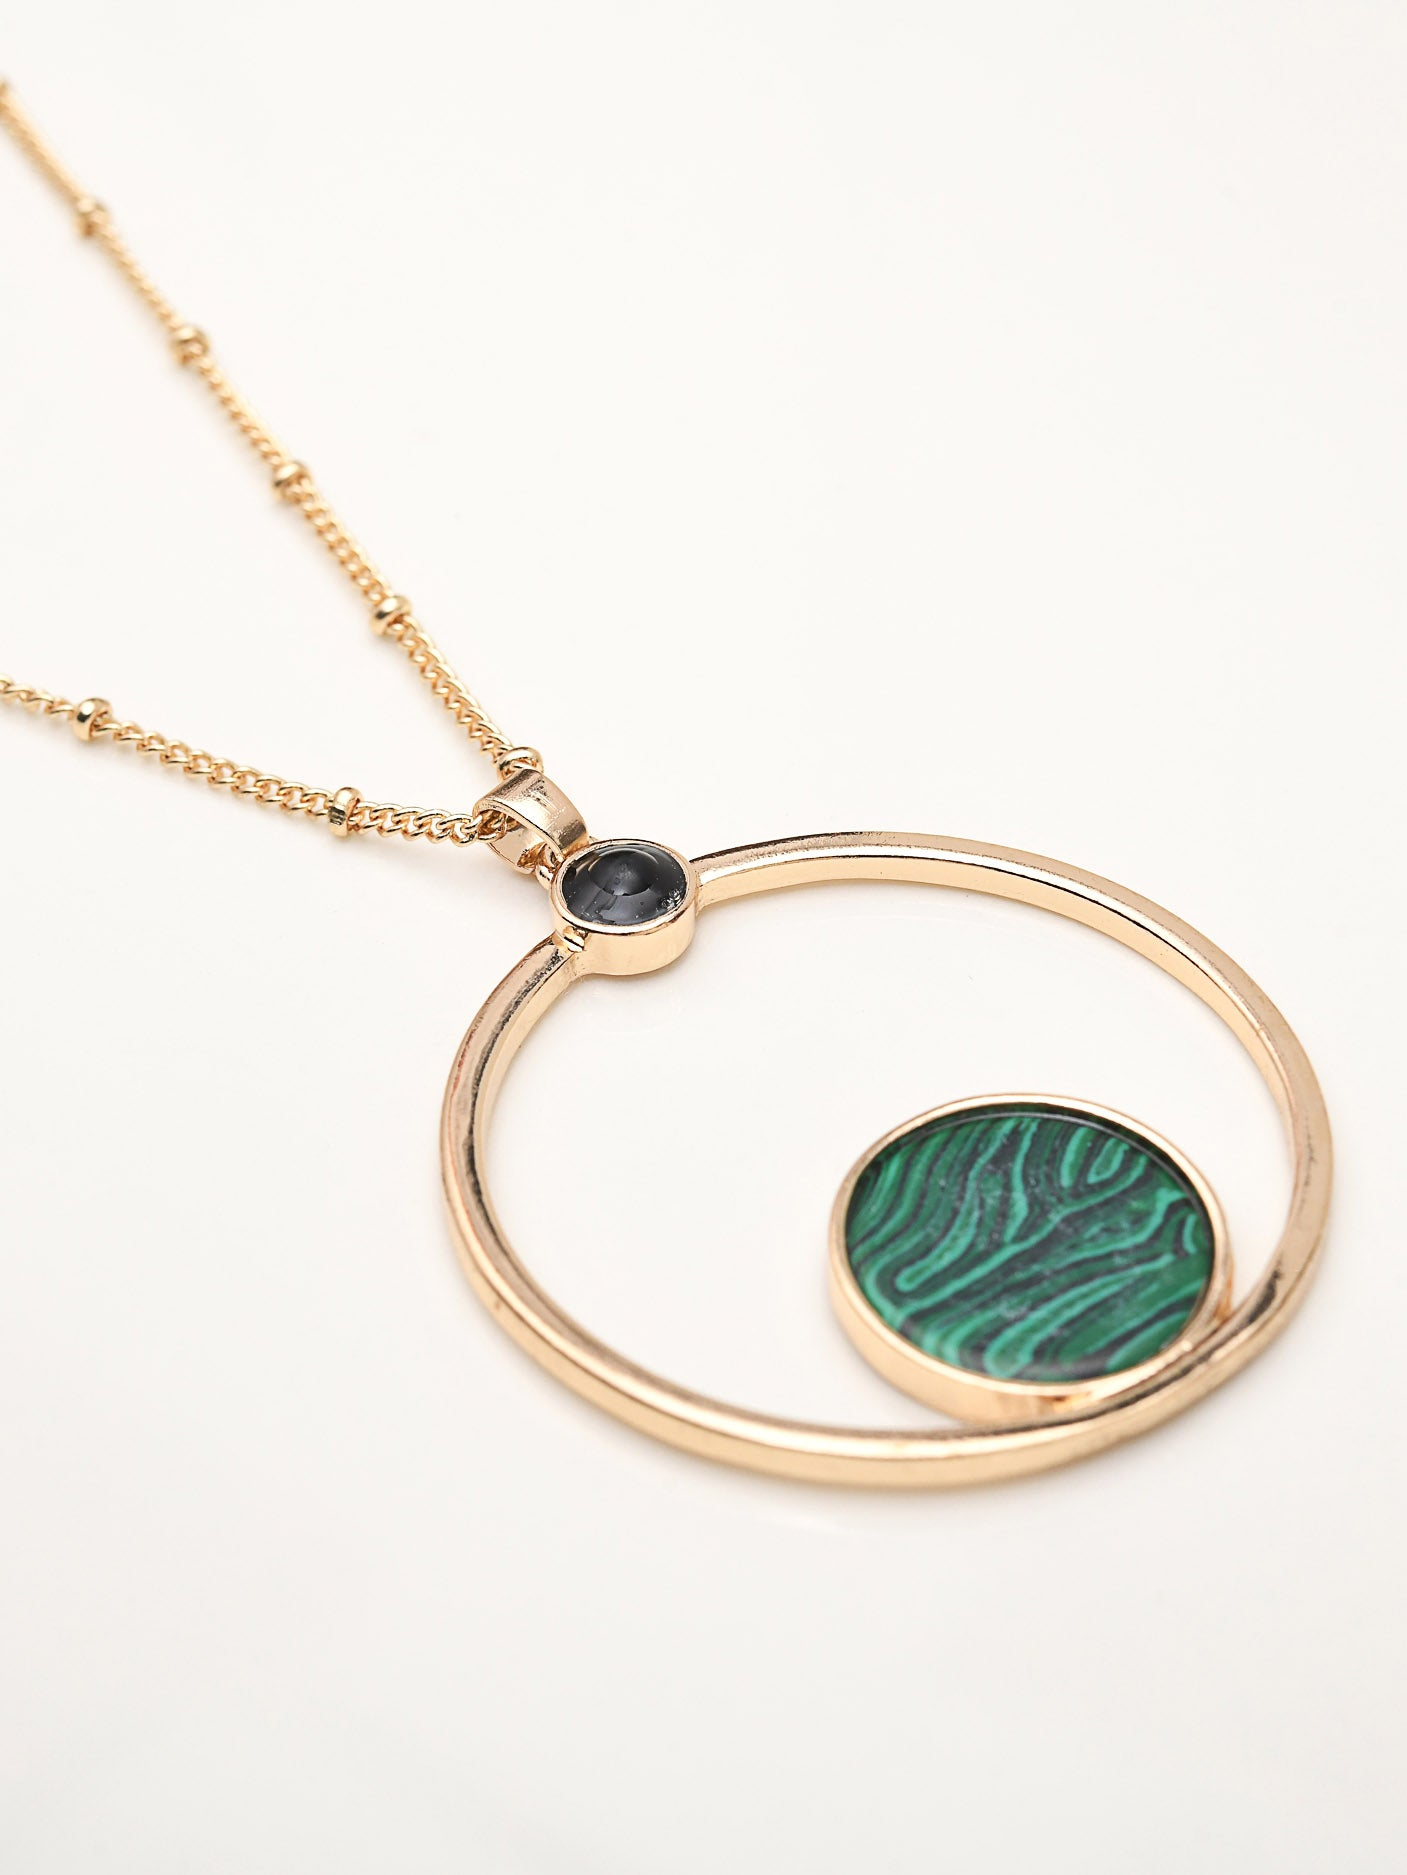 Circular Pendant Necklace